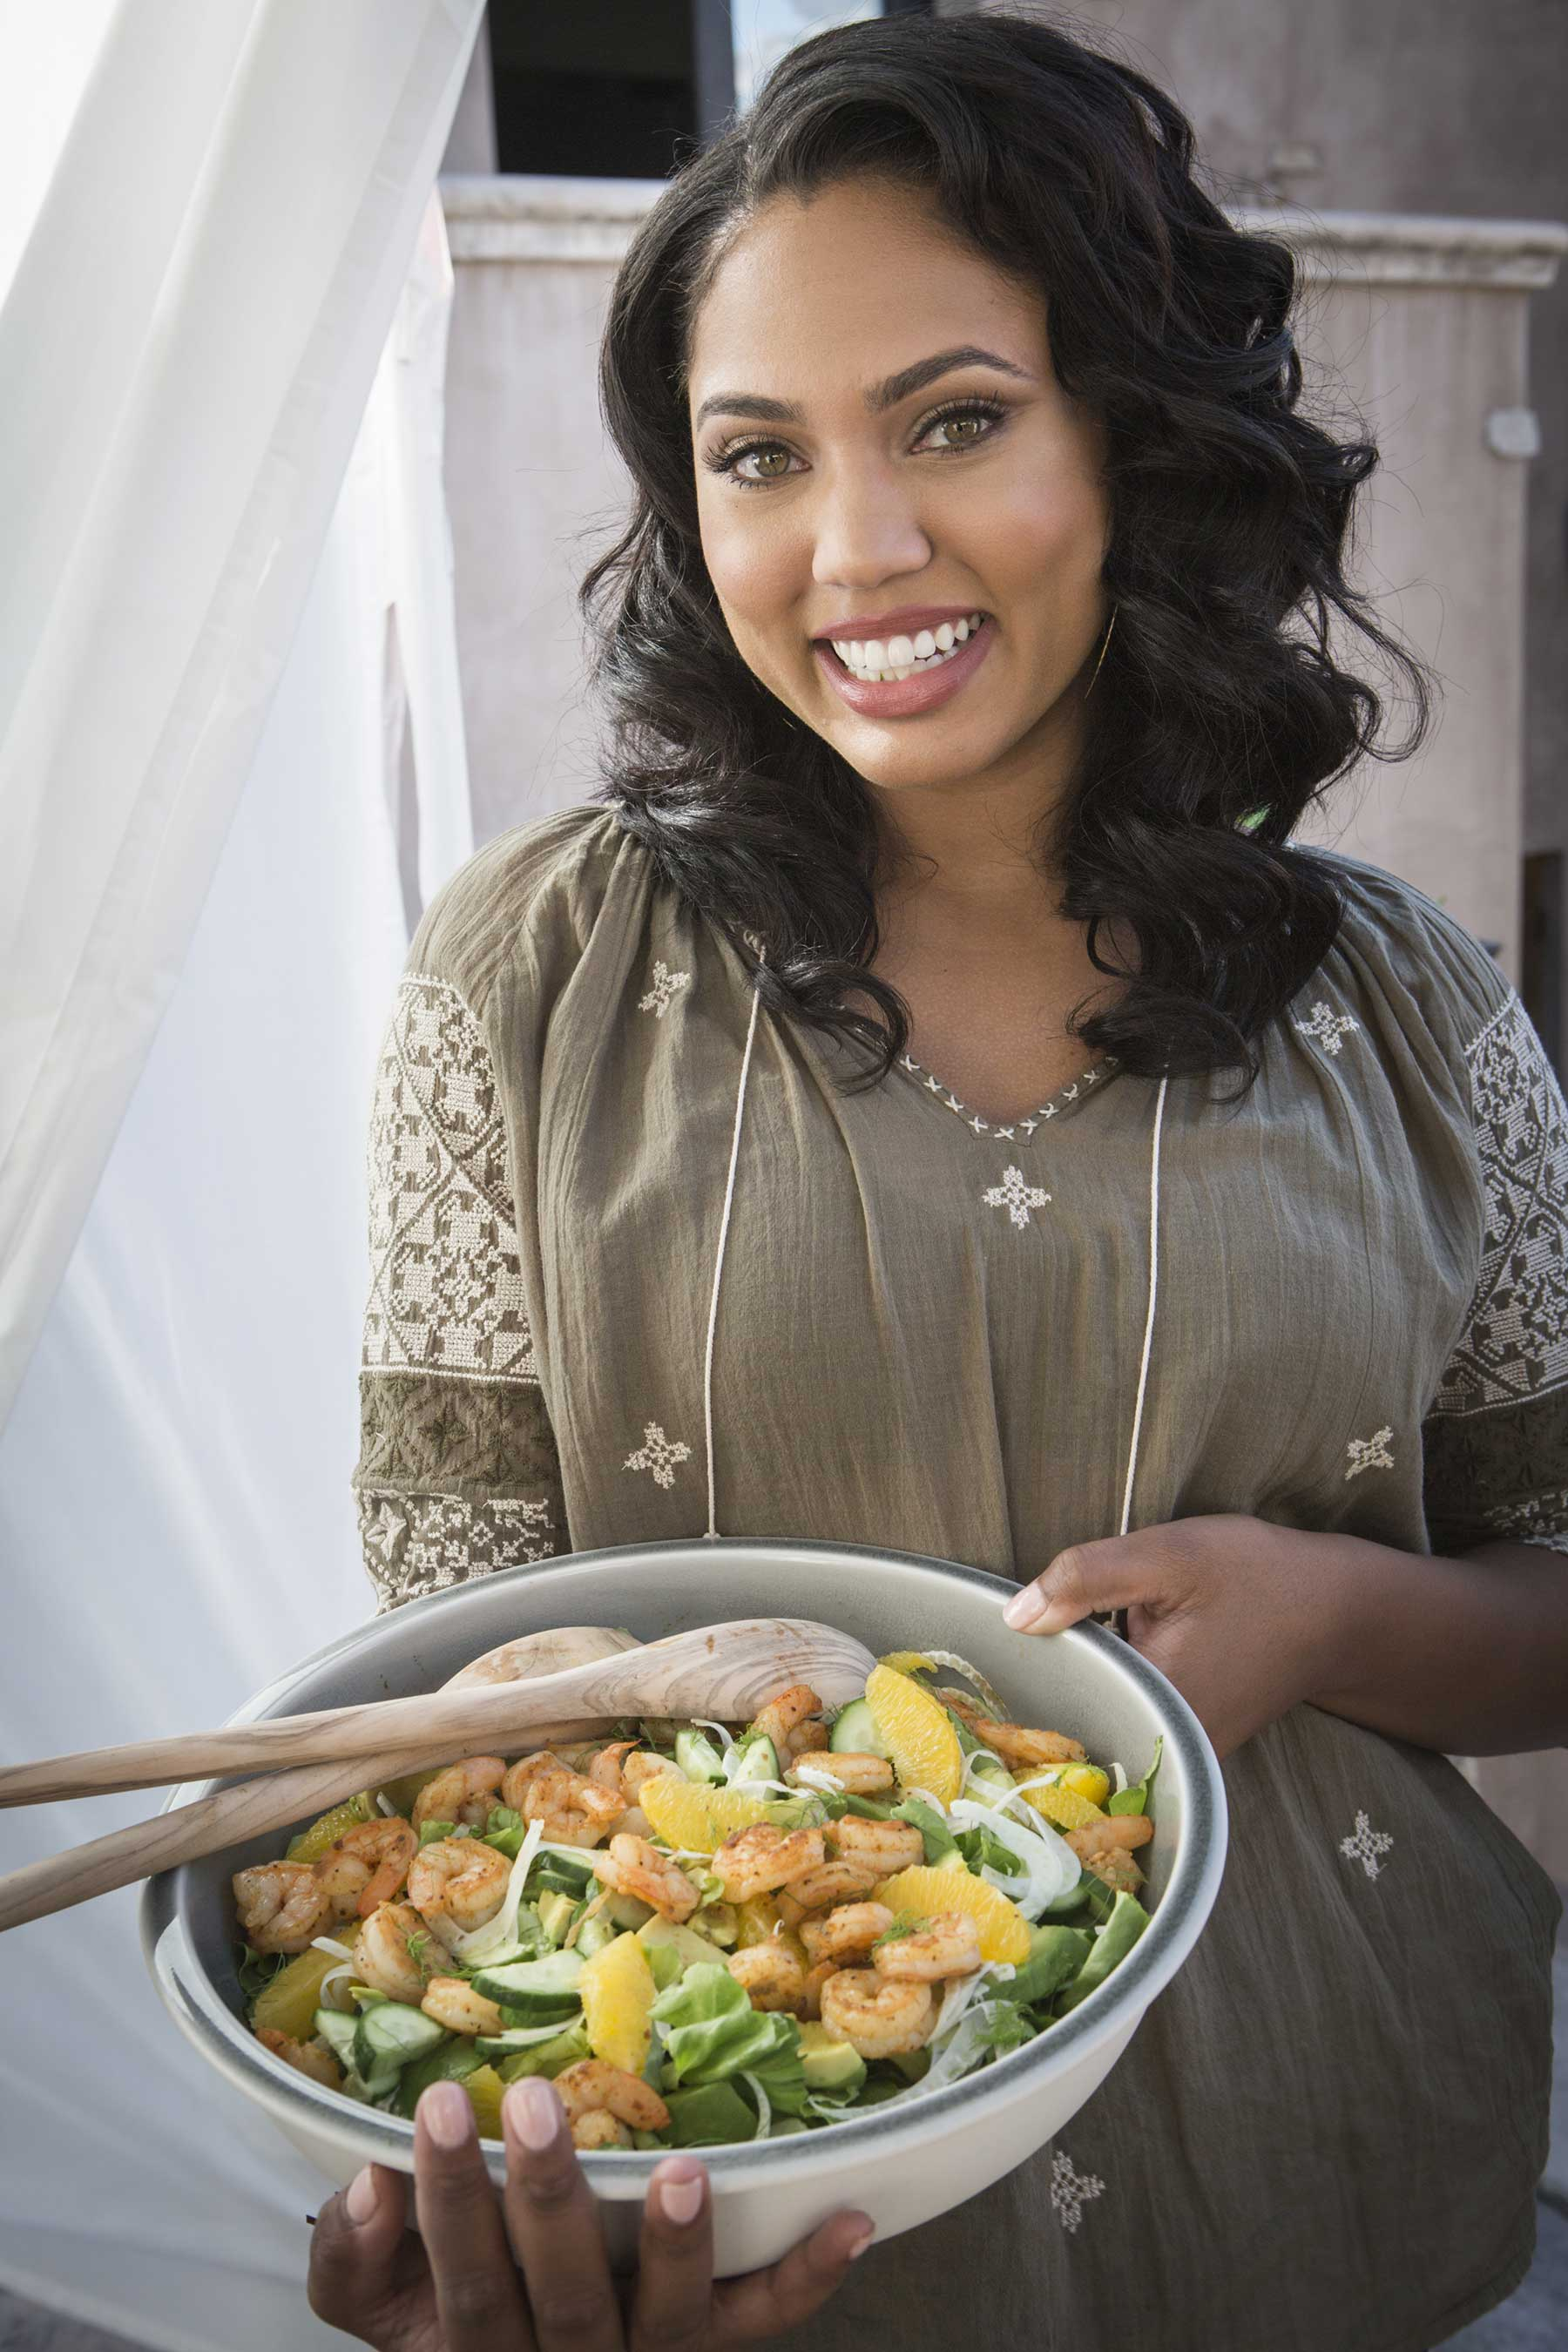 Ayesha Curry Celebrates Family, Friends And Food In New Series Ayesha's Homemade